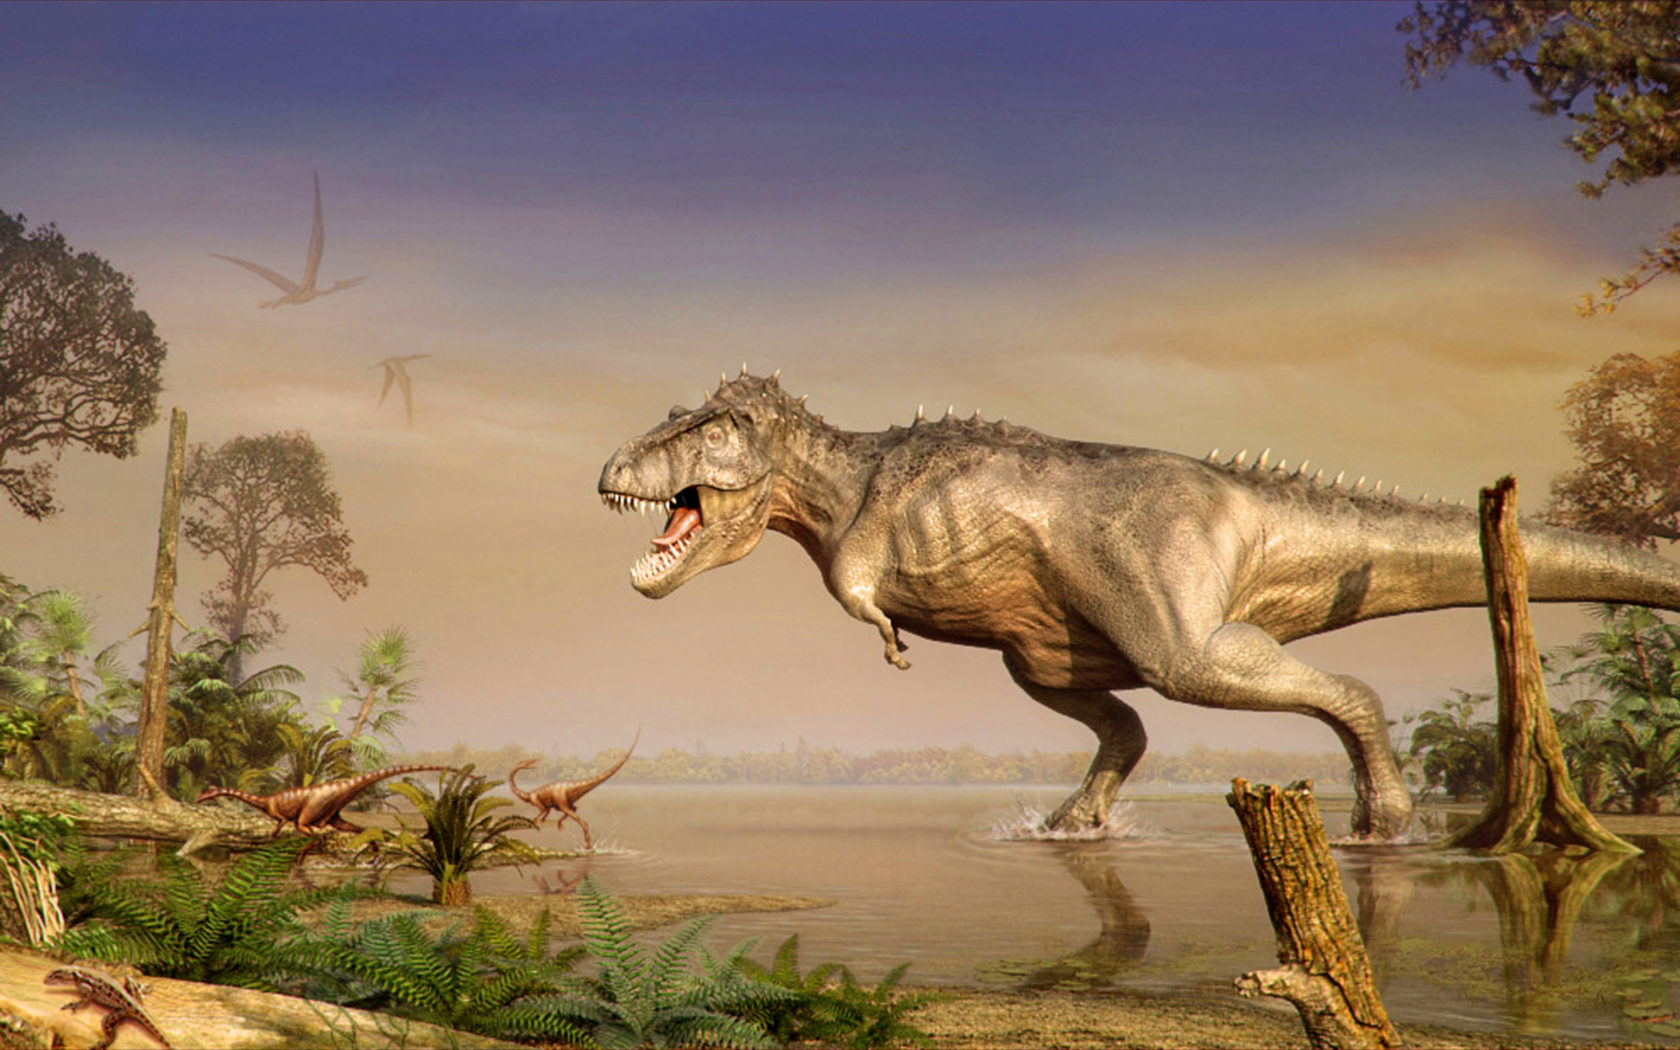 Dinosaur 3d Live Wallpaper Dinosaurs World Of Animals From The Past Hd Wallpaper